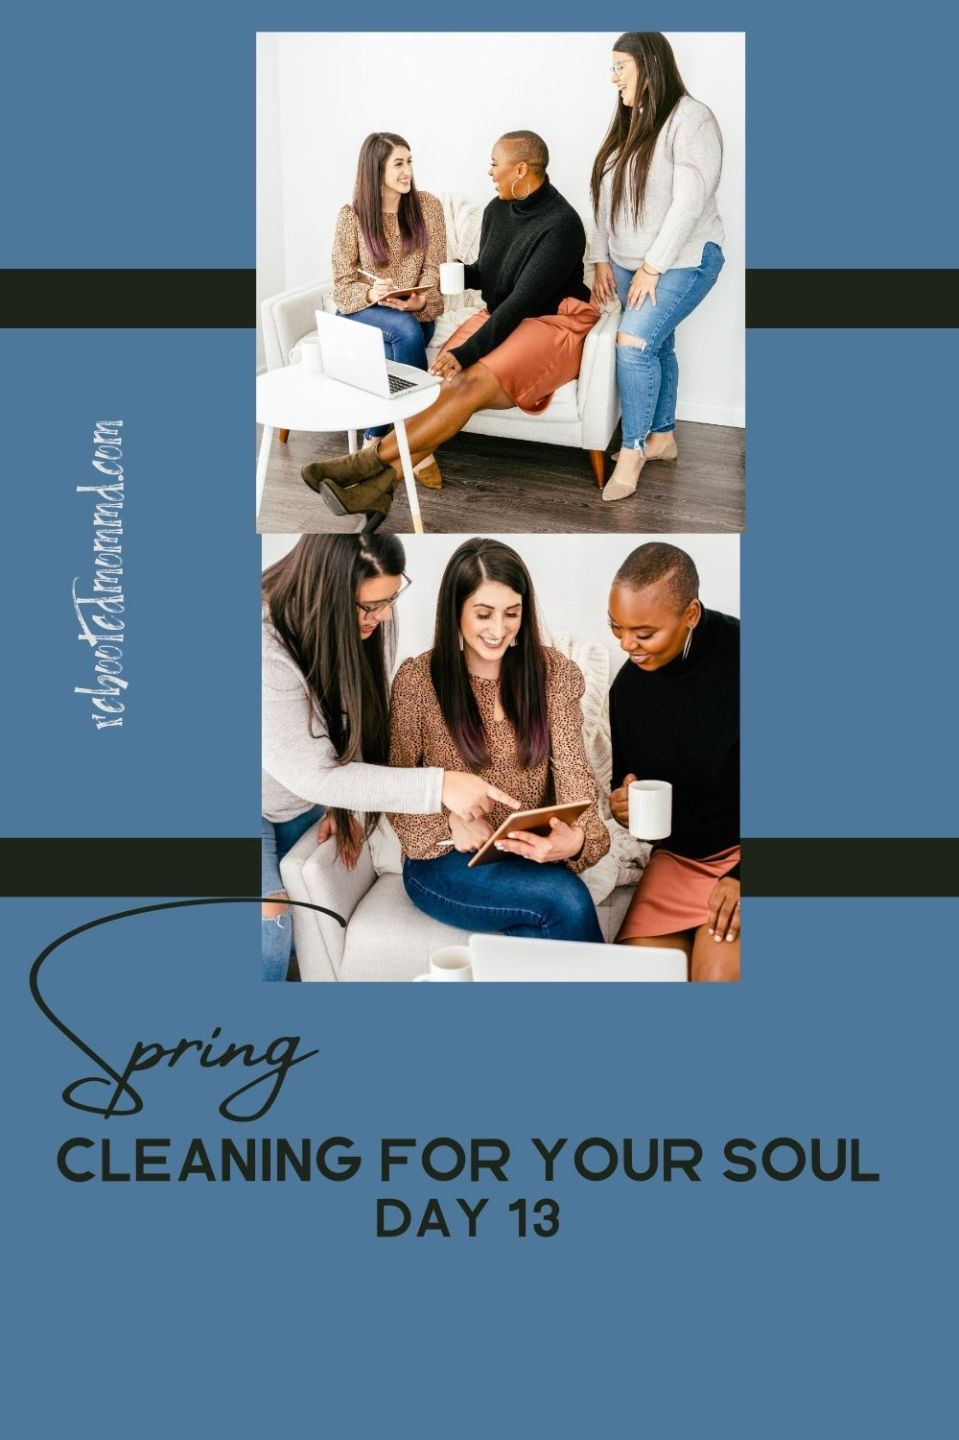 Spring Cleaning for Your Soul, Day 13: Plant the Seeds for Positive Change